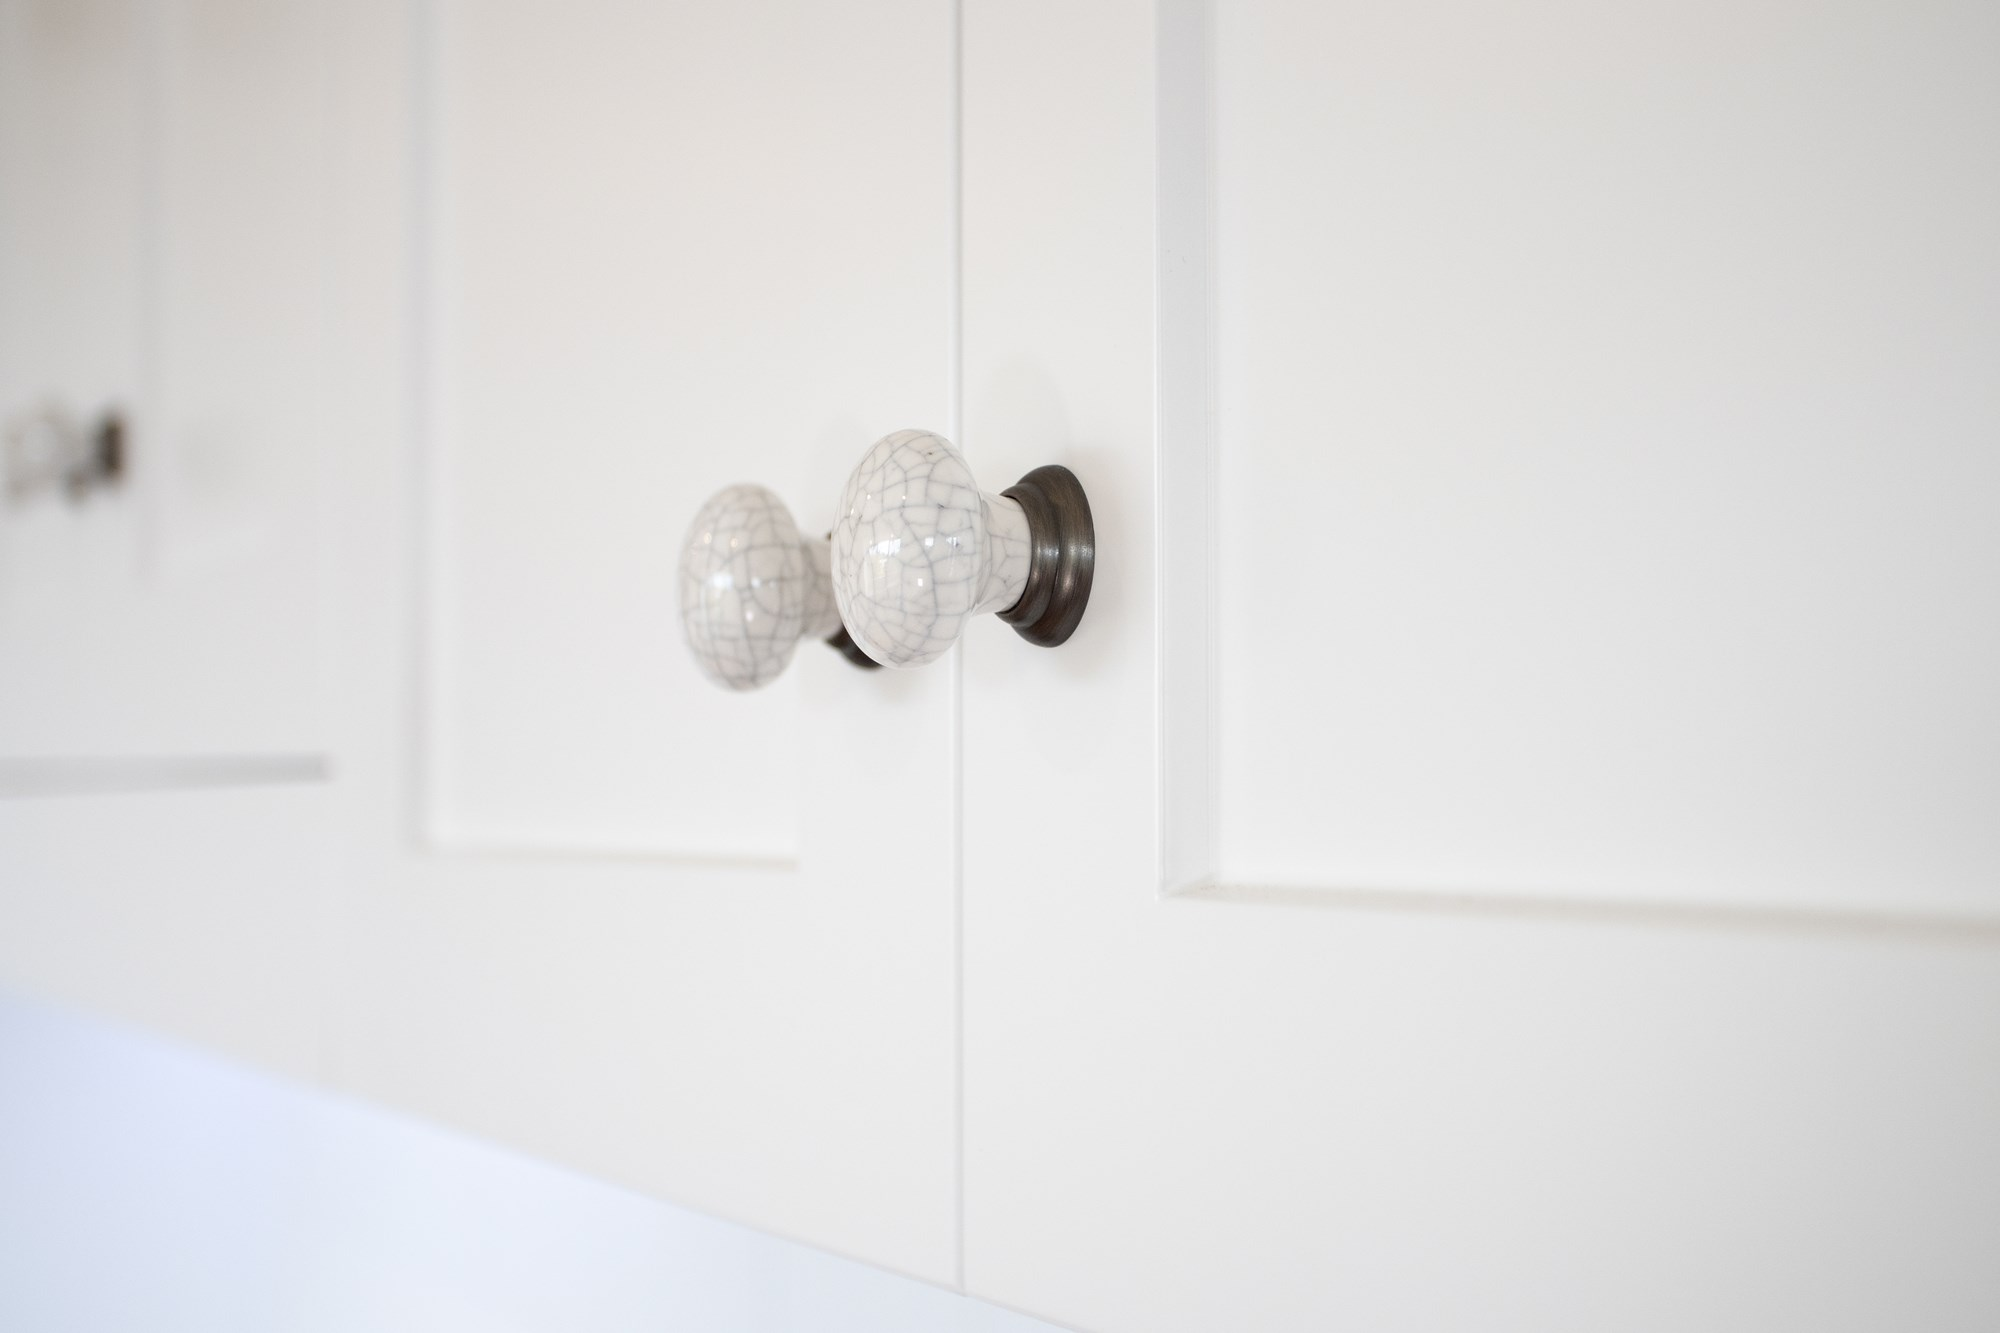 Whitebrige kitchen renovation knob.jpg